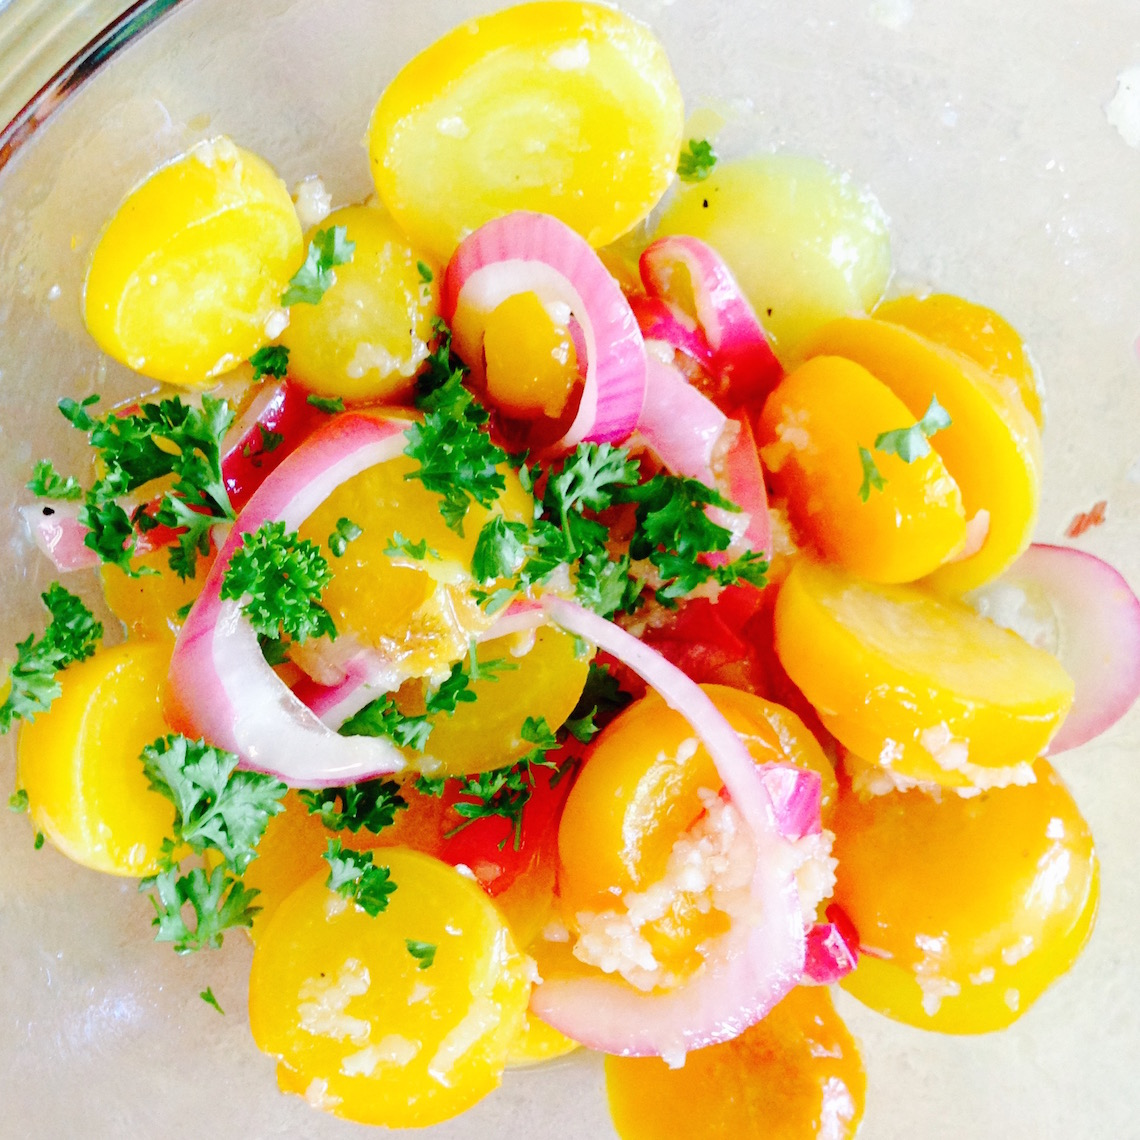 Garlic Golden Beets